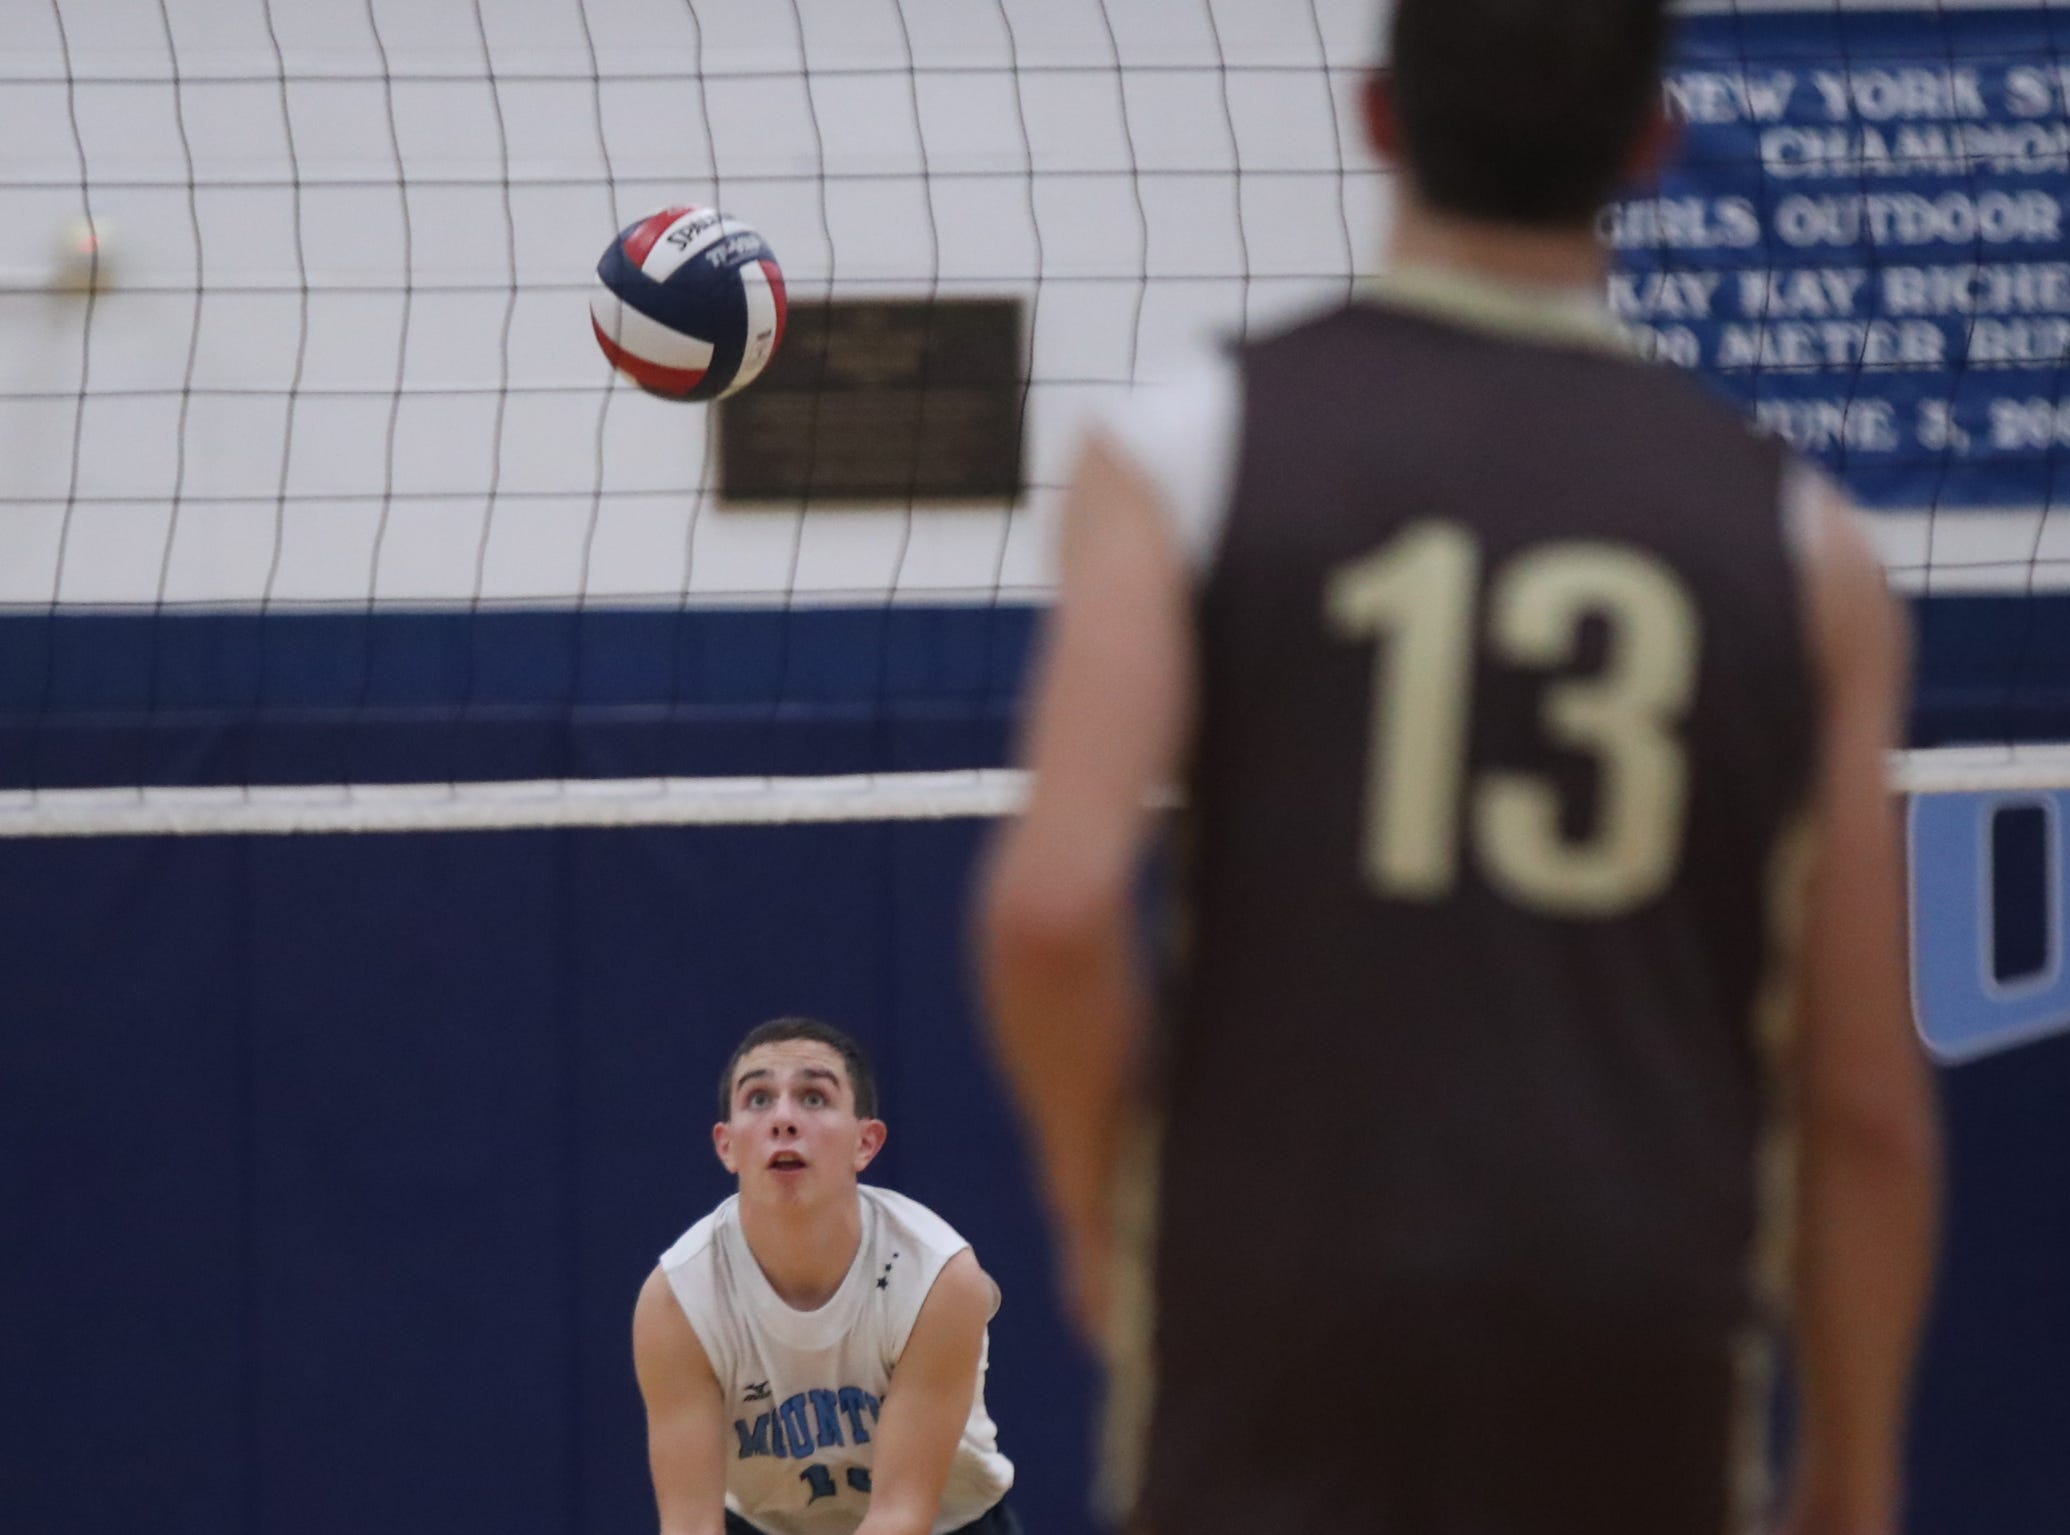 Suffern defeats Clarkstown South 3-1 in boys volleyball action at Suffern High School in Suffern on Thursday, October 11, 2018.